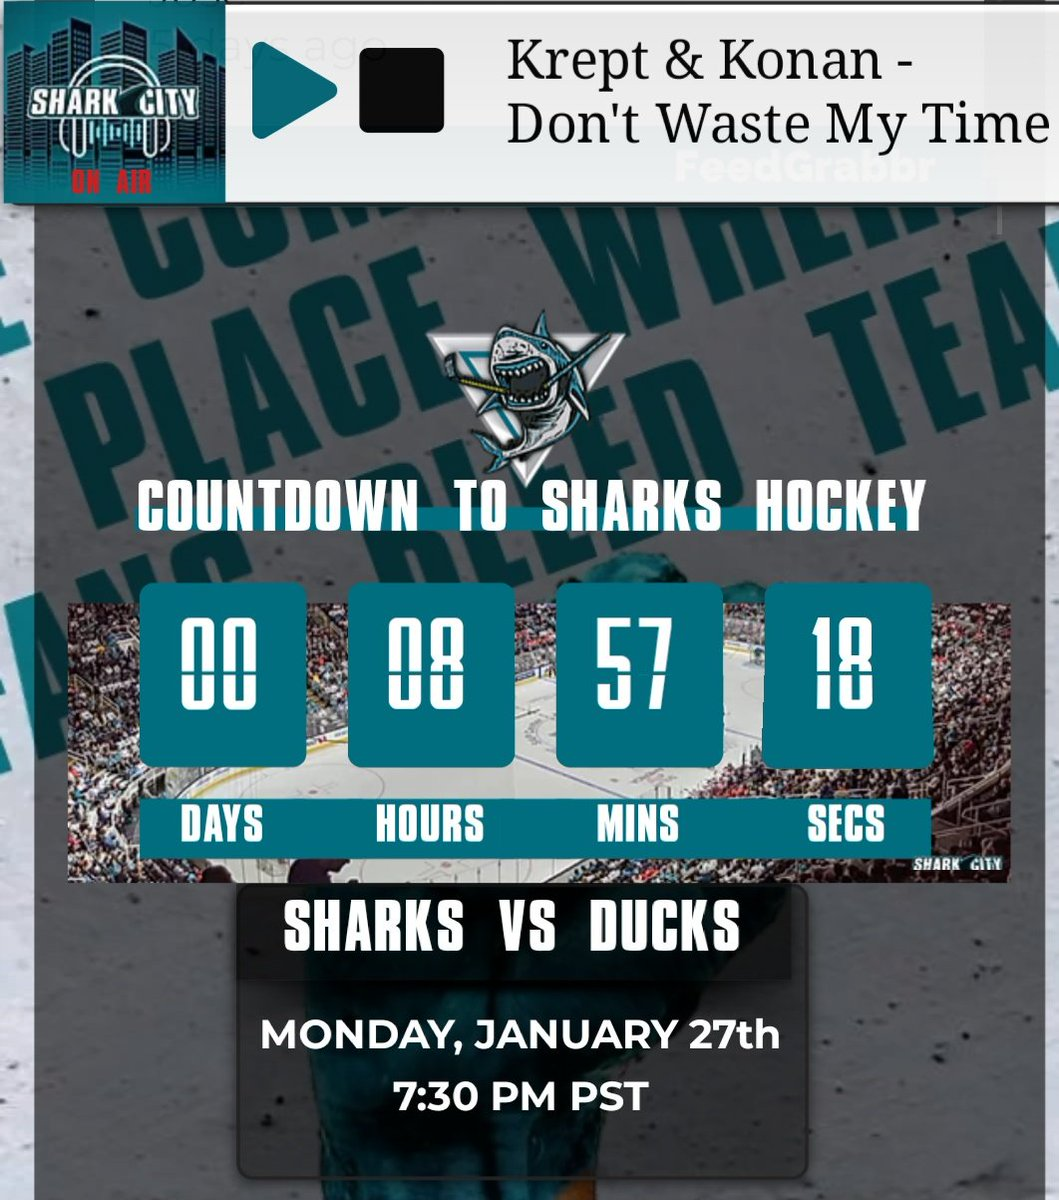 Gameday is all the #MondayMotivation that we need.  Let's Go #SJSharks  Check out our 24/7 live stream at http://sharkcitylive.com pic.twitter.com/xqtD6QBO6h